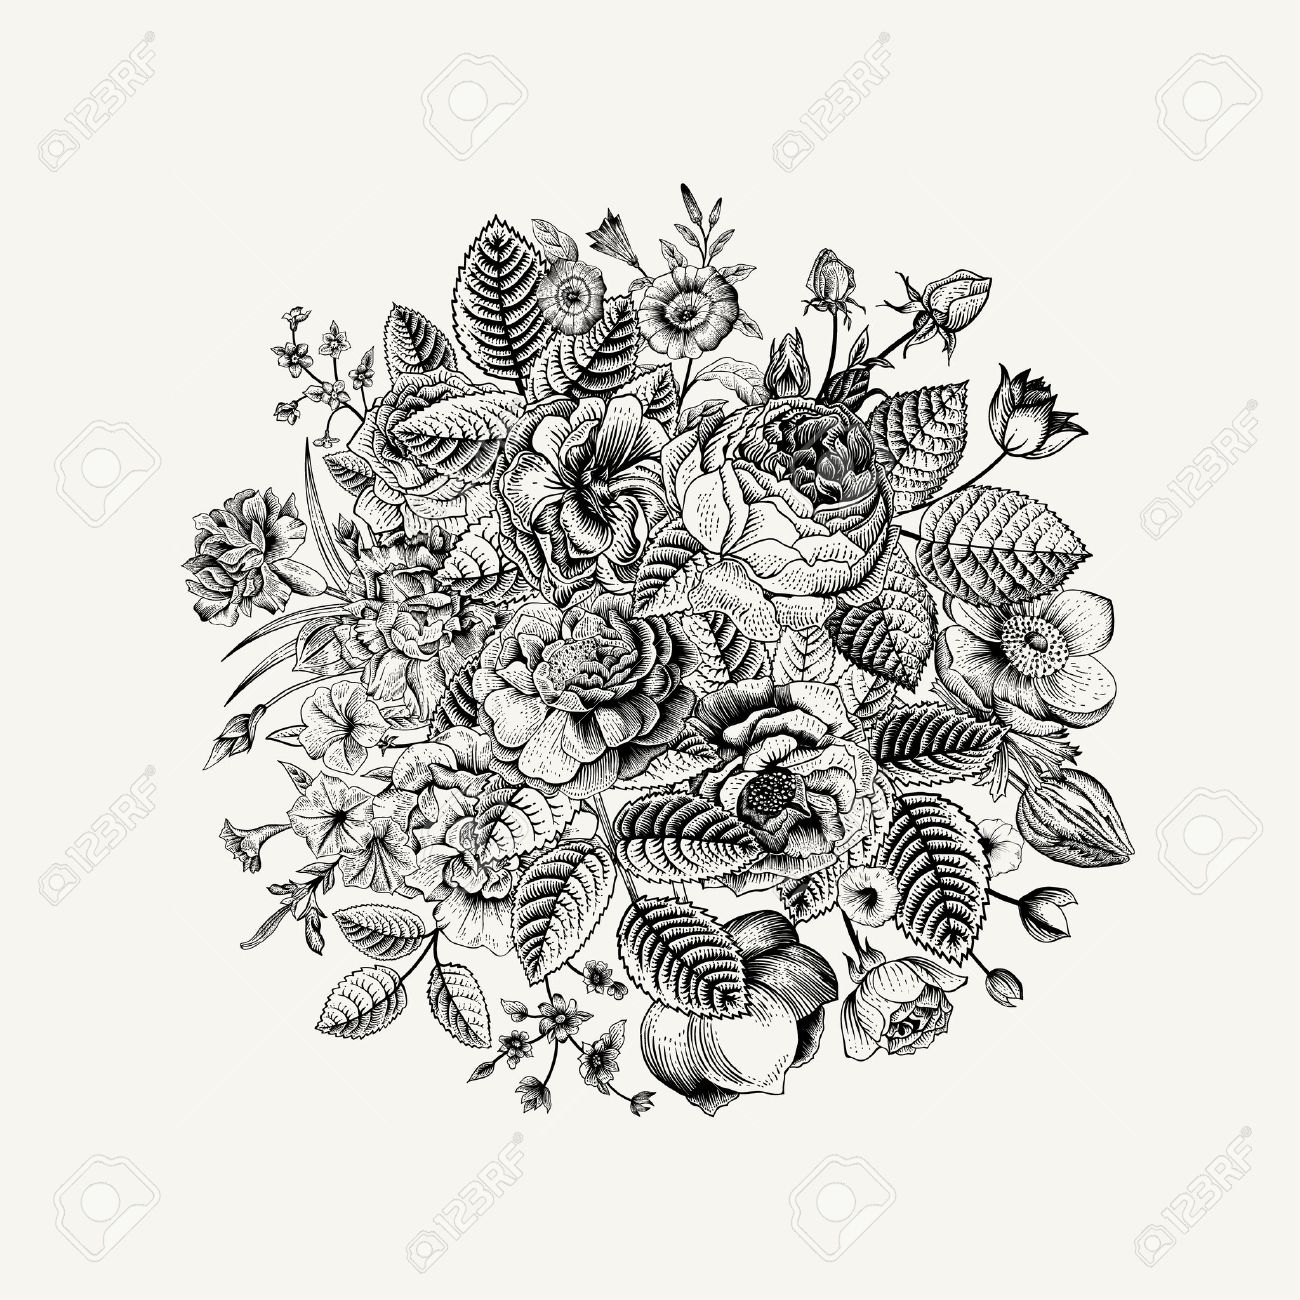 Vintage Floral Vector Bouquet With Black White Summer Garden